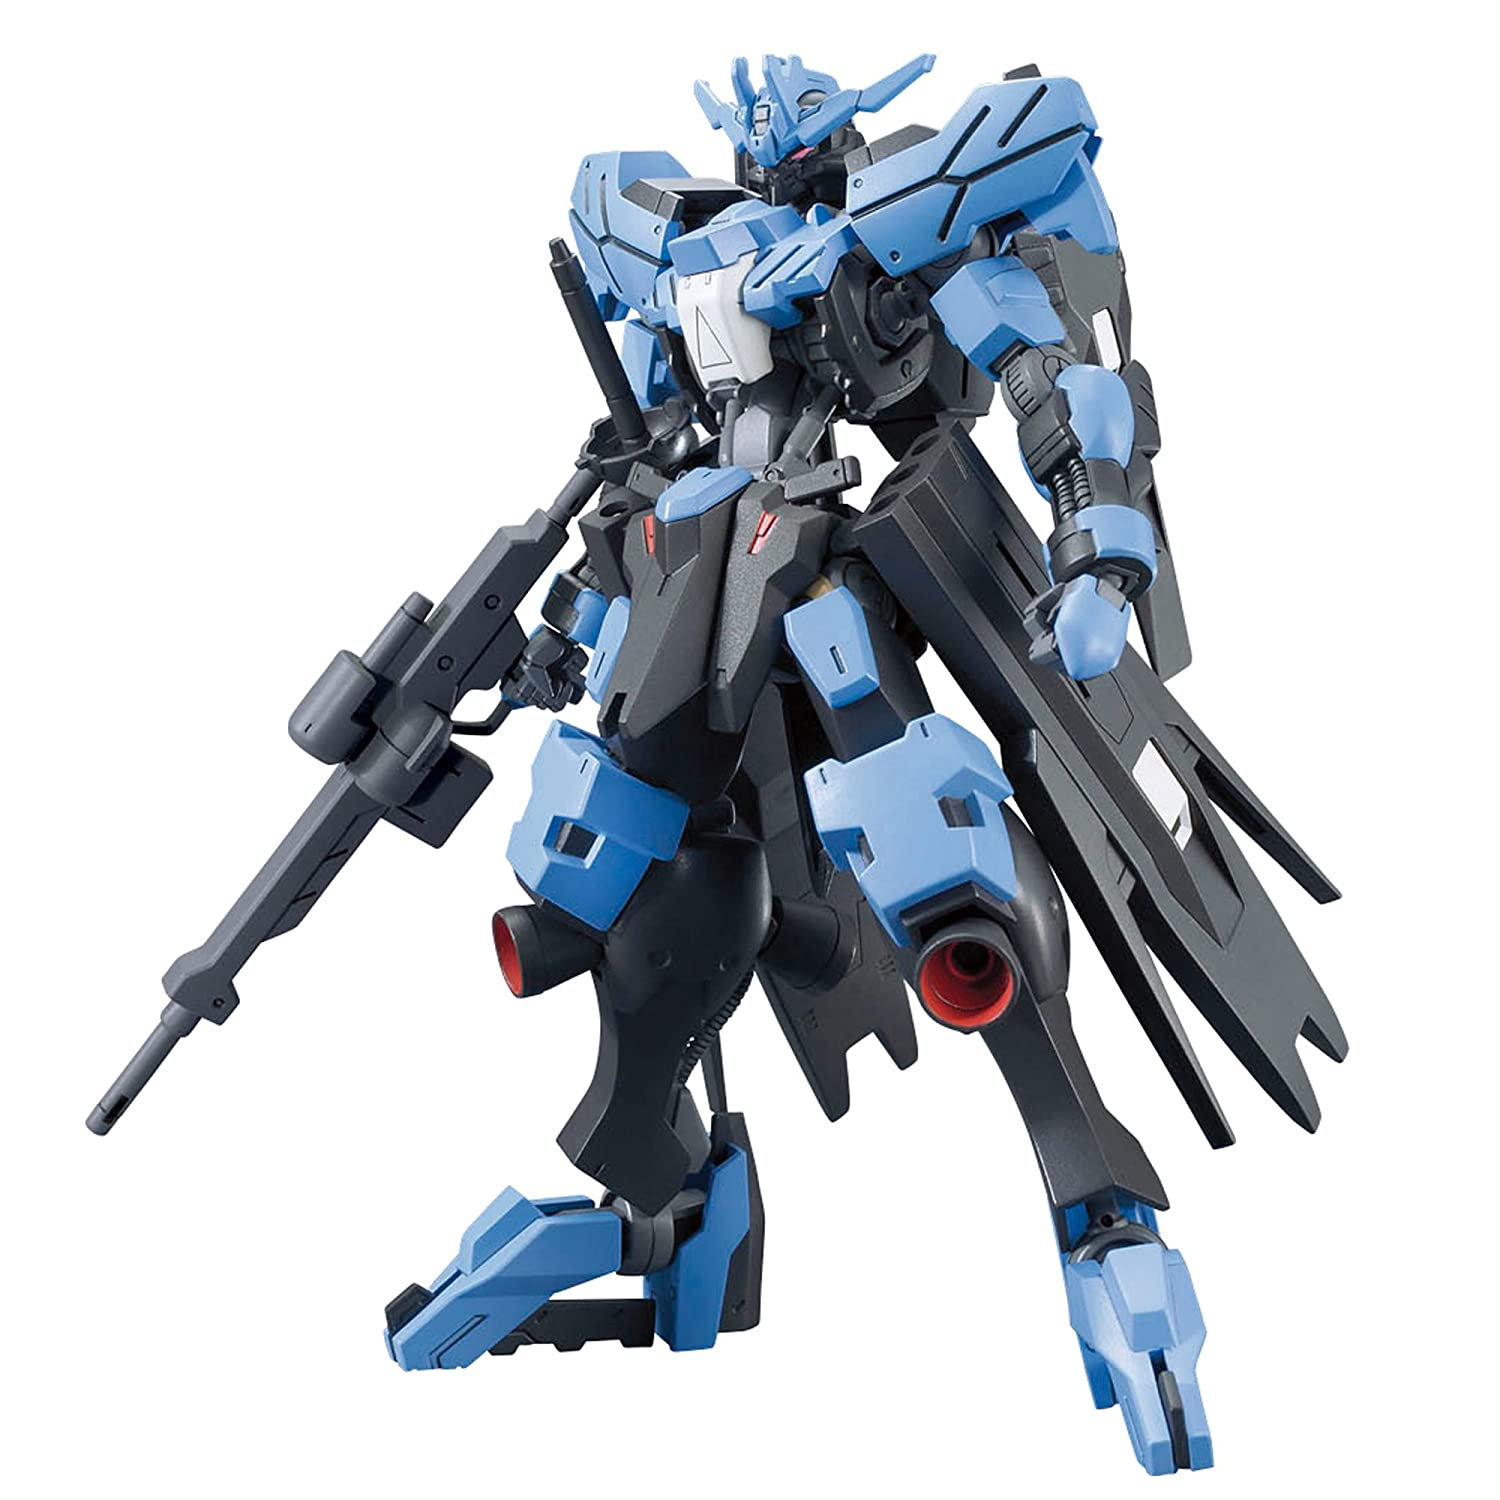 "Bandai Hobby Hg Ibo Gundam Vidar ""Ibo: 2nd Season"" Building Kit (1/144 Scale) by Bandai Hobby"